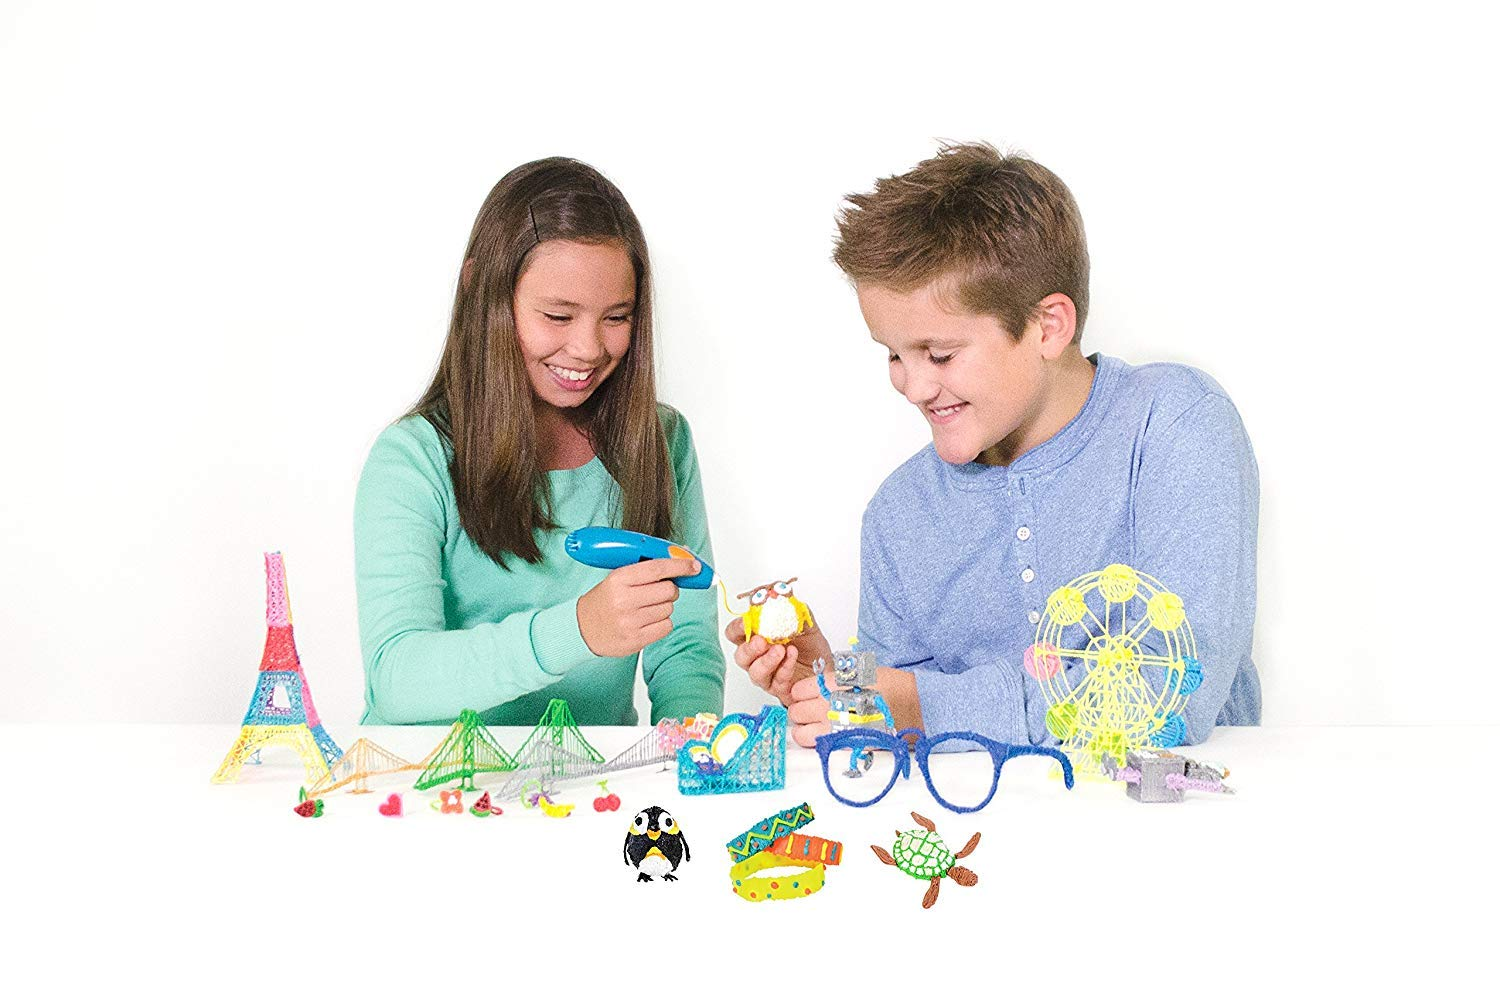 3Doodler Start Essentials 3D Pen Set For Kids with Free Refill Filament - STEM Toy For Boys & Girls, Age 6 & Up - Toy of The Year Award Winner by 3Doodler (Image #8)